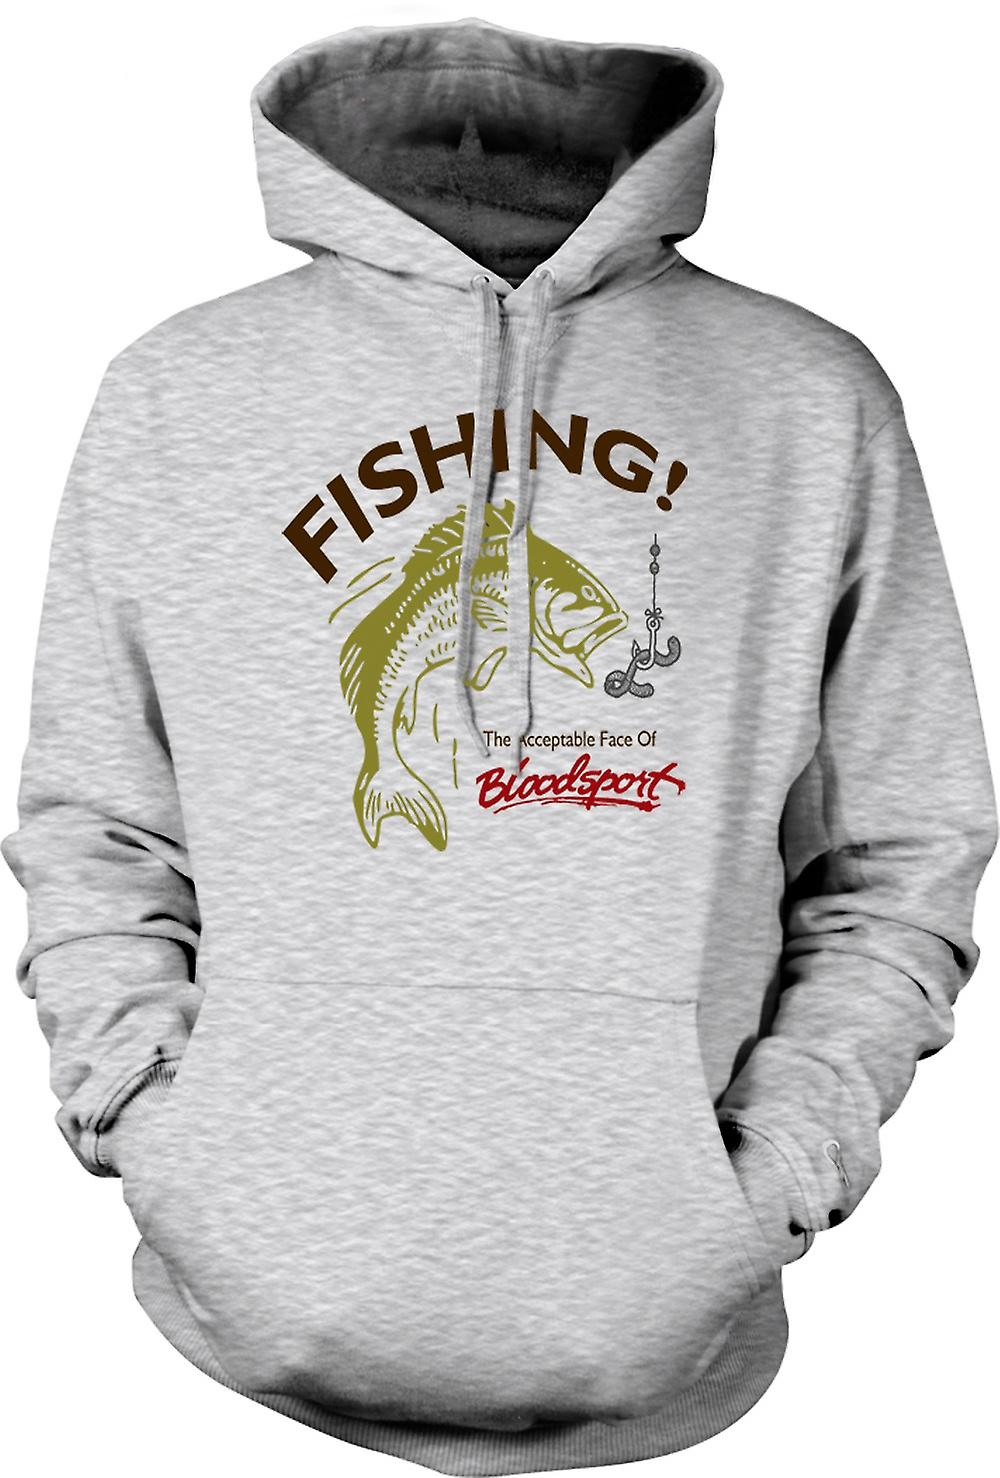 Mens Hoodie - Fishing Acceptable Bloodsport - Funny